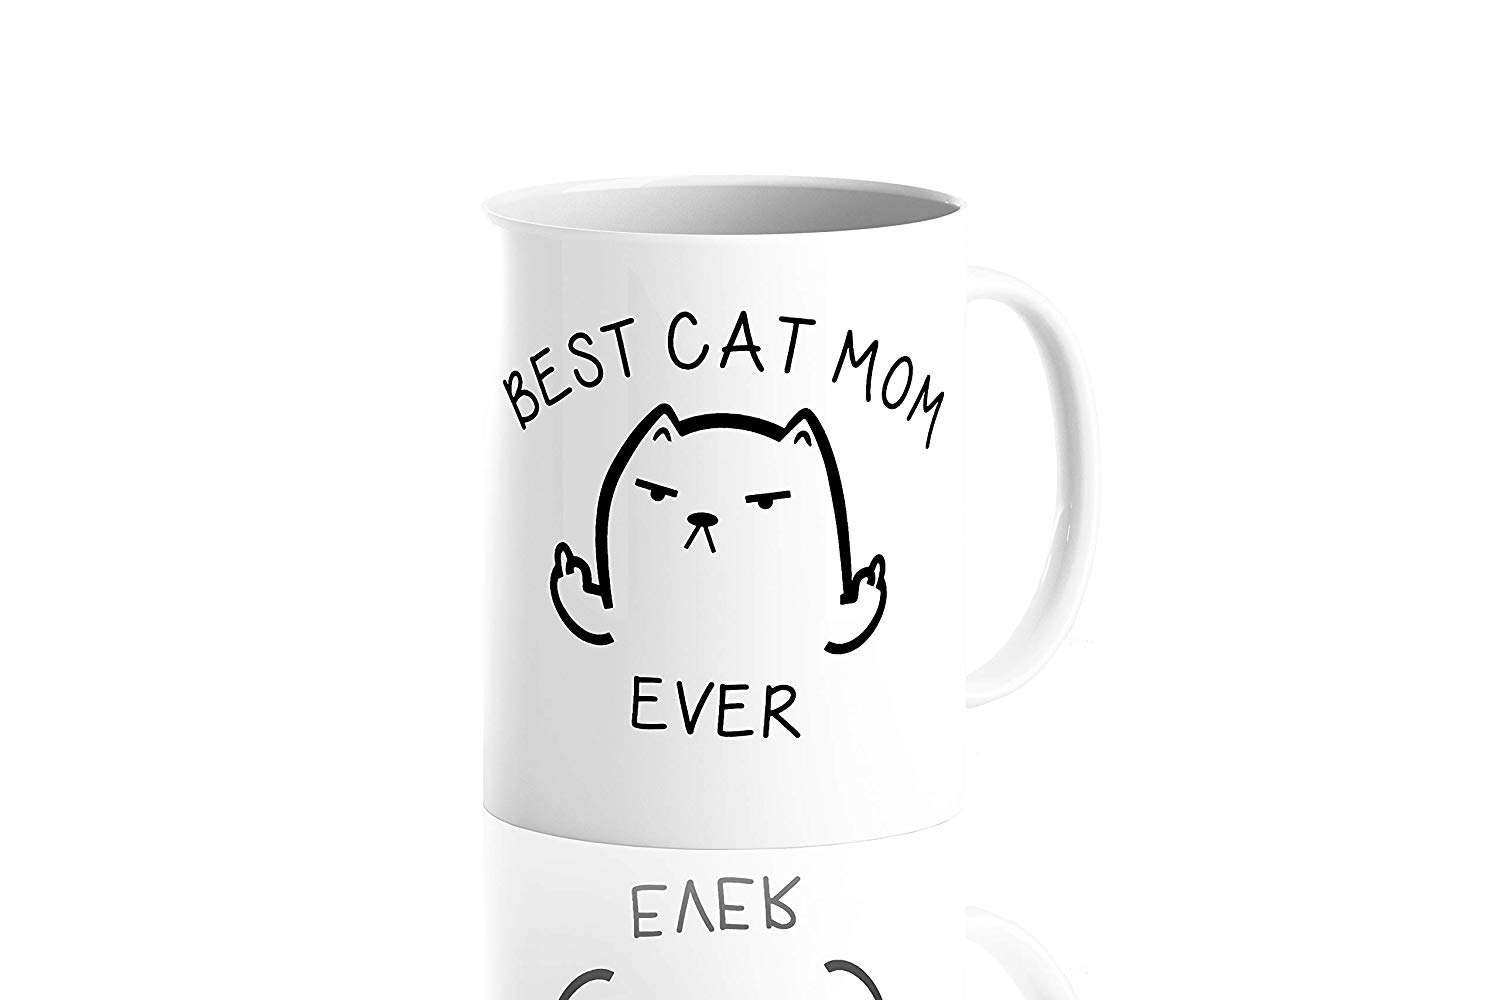 Best Cat Mom Ever – Funny Coffee Mug Cat Middle Finger 11 Oz – Birthday Gift For Mother,Mom Or Wife